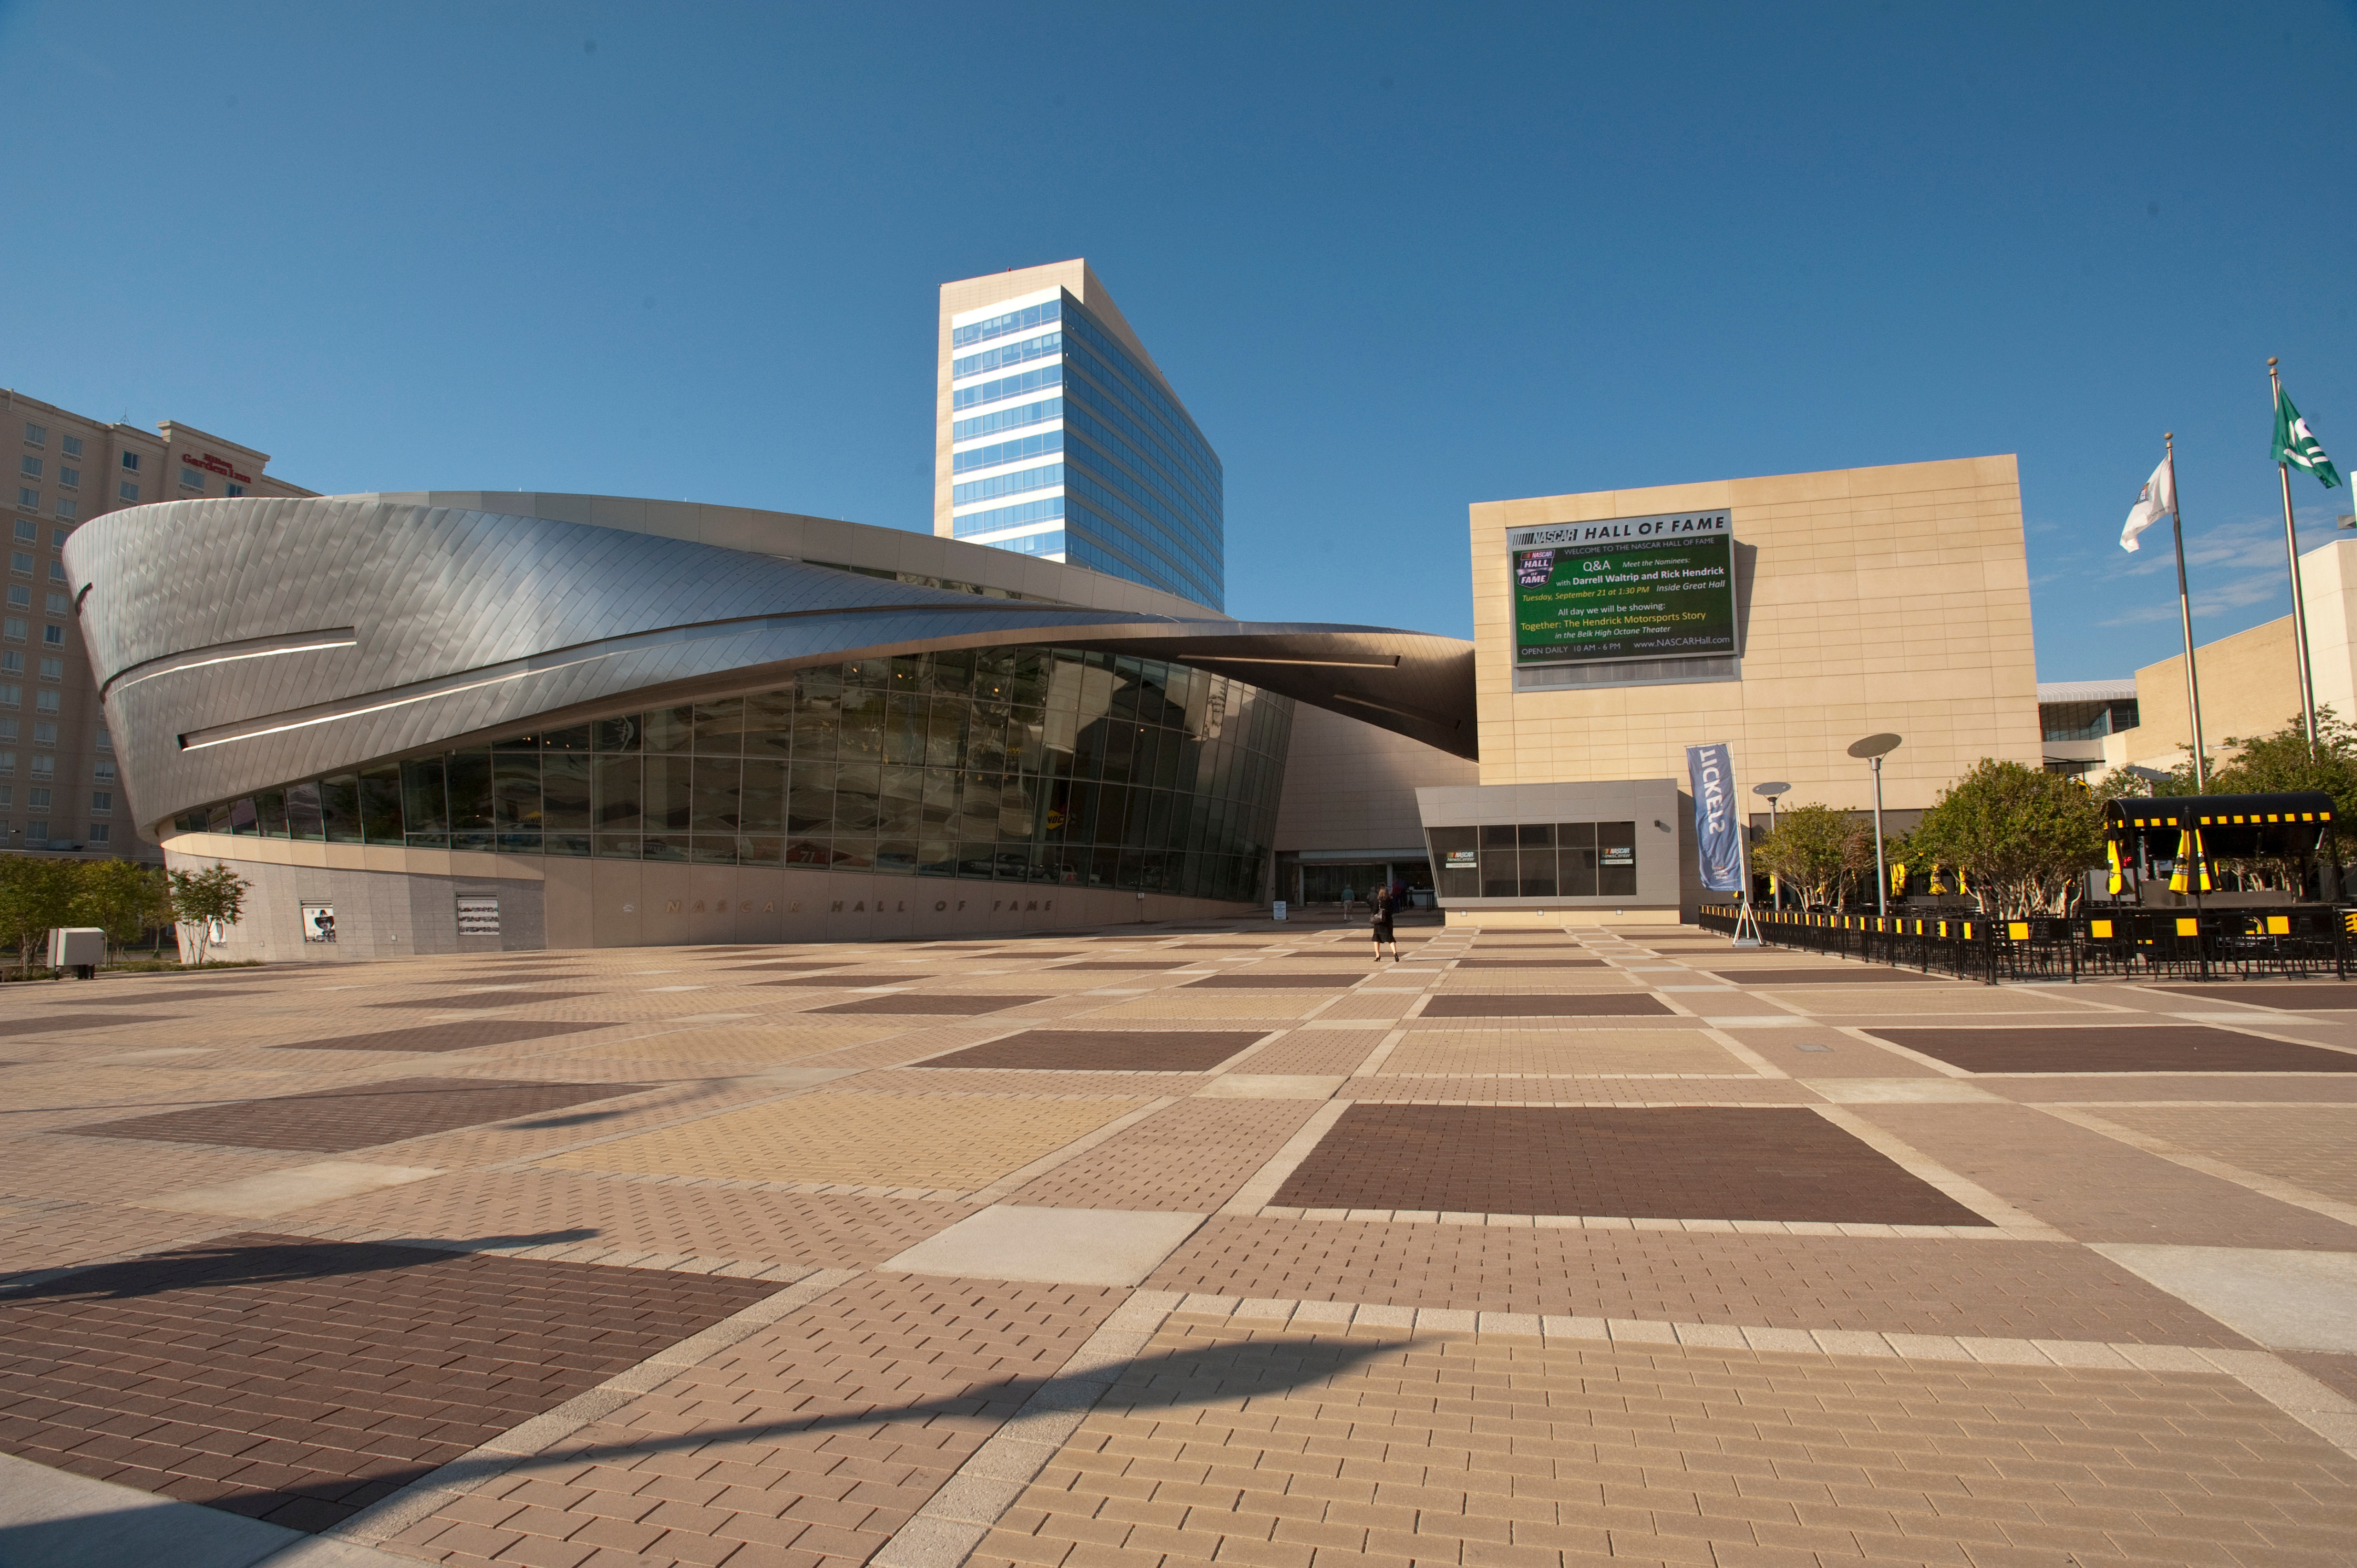 NASCAR Hall of Fame Outside View